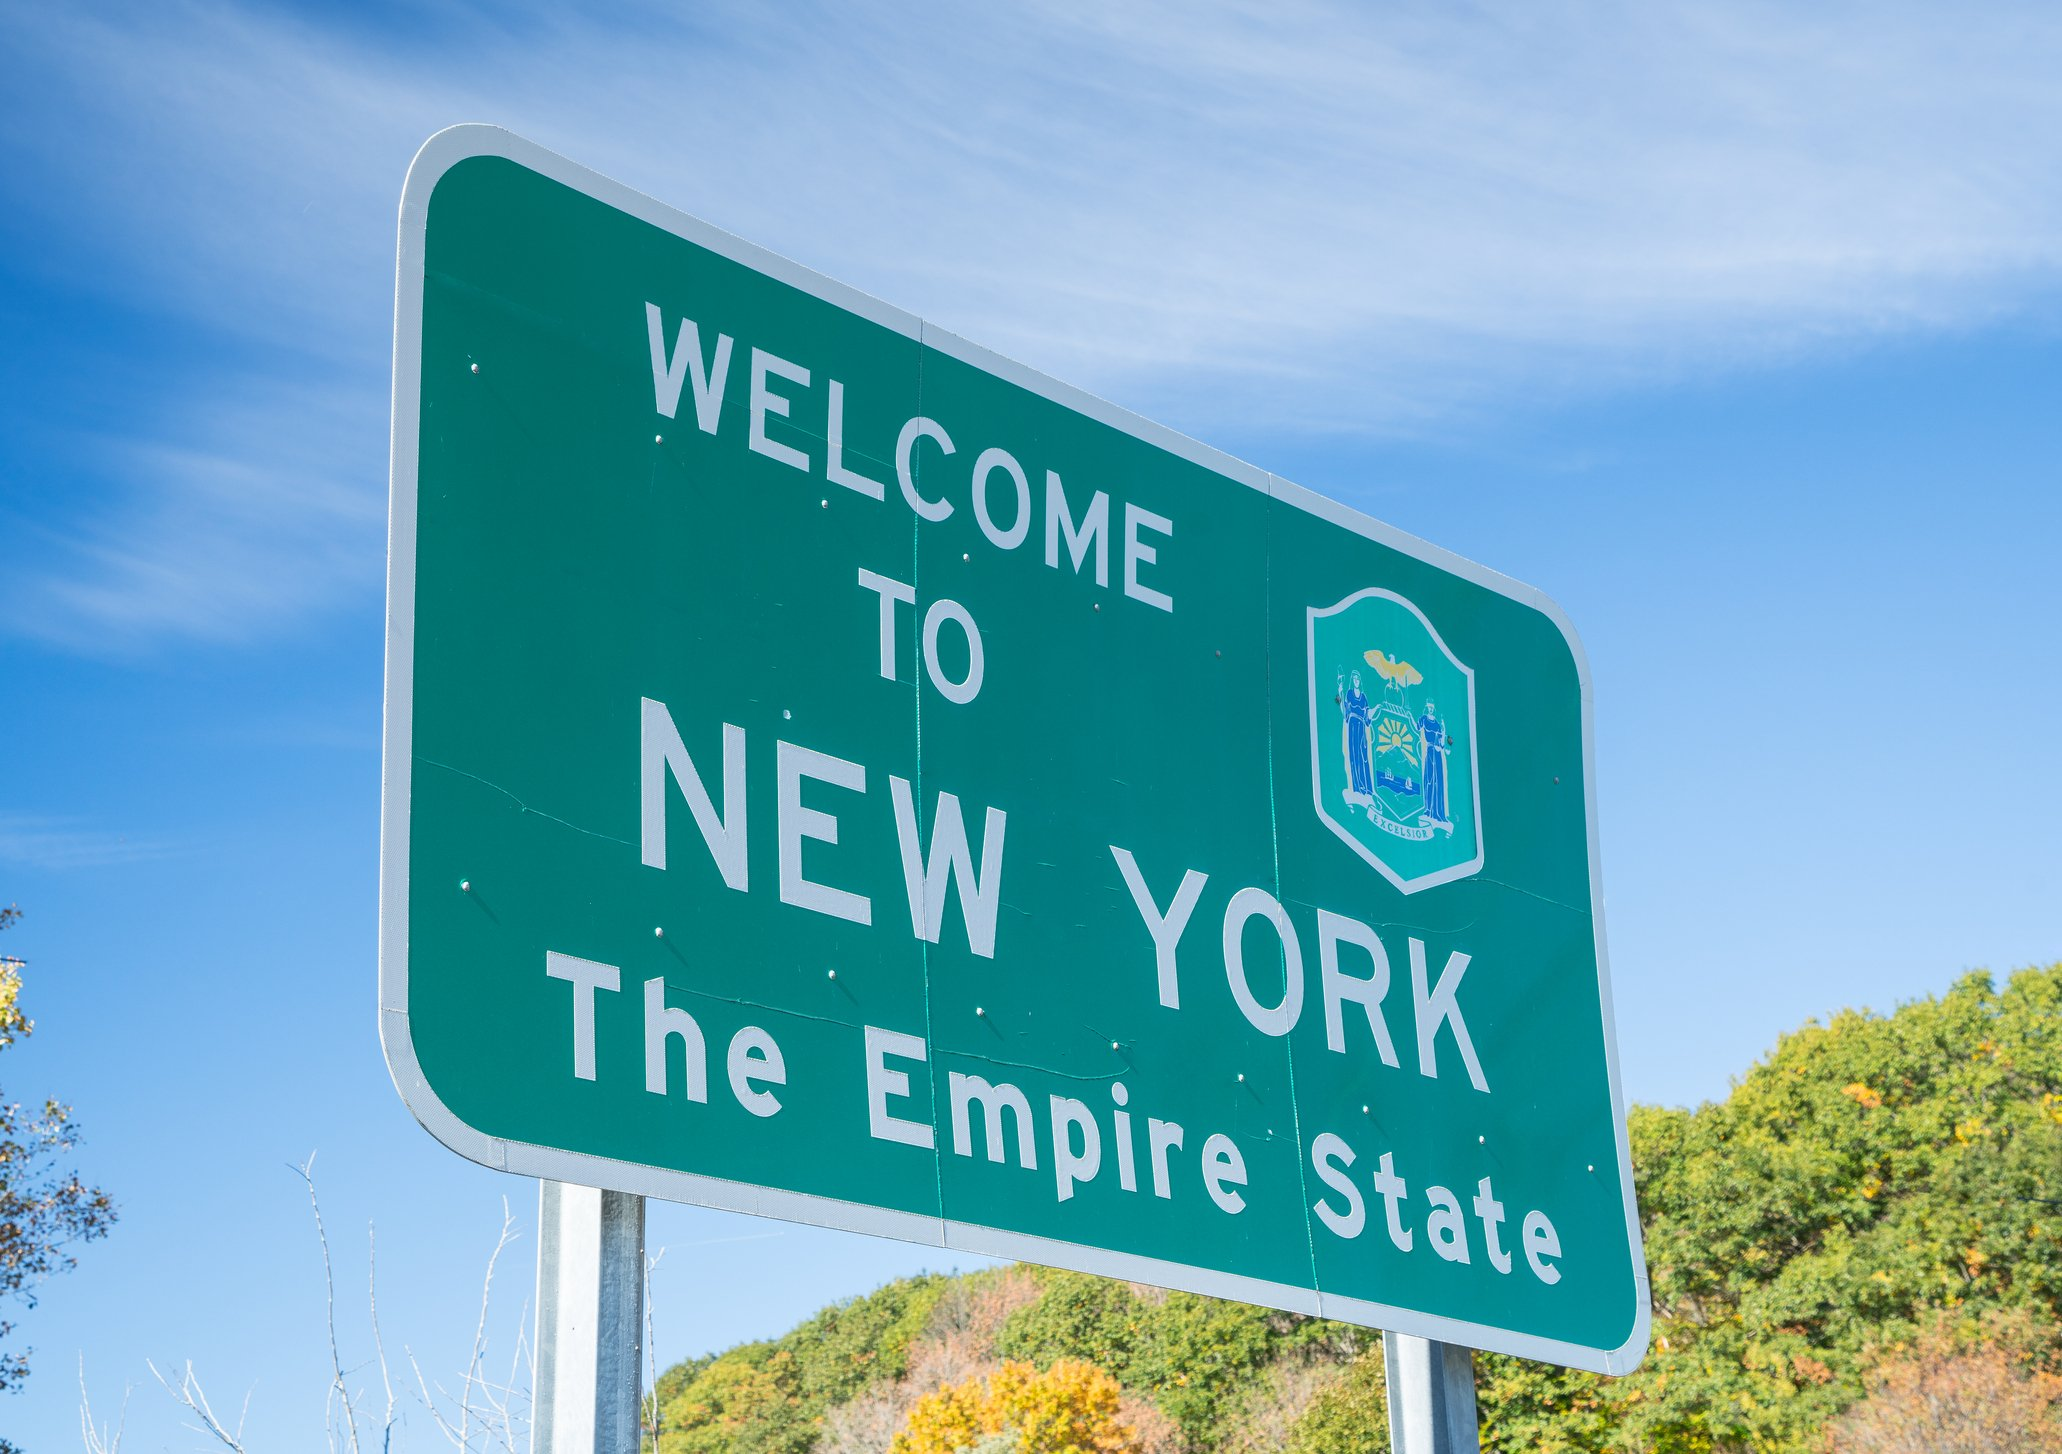 Slide 33 of 51: New York is arguably the most exciting state of them all, but unfortunately has one of the dullest looking signs. See 15 hidden New York City gems that most New Yorkers don't even know about.